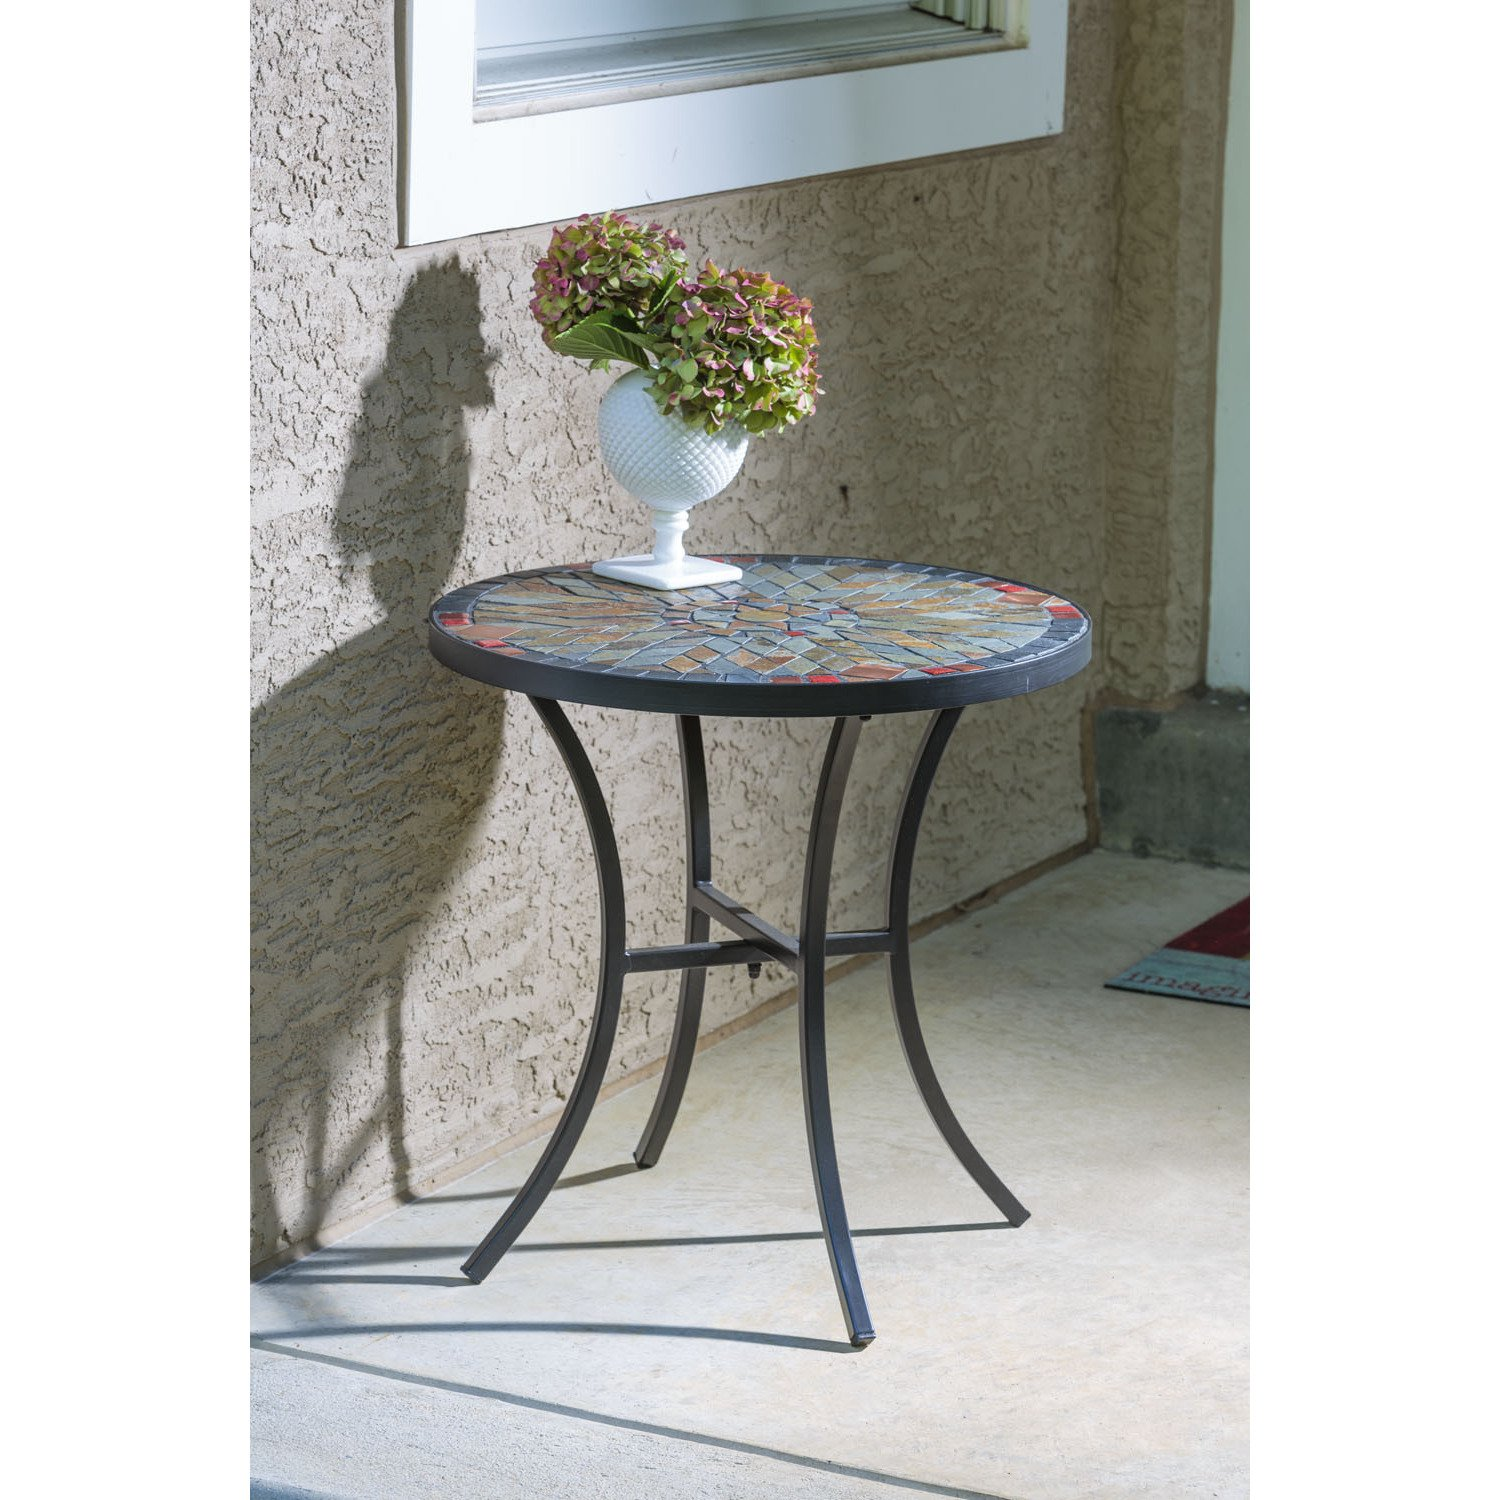 sagrada ceramic inch round mosaic outdoor side table with tile top and base free shipping today bathroom styles elegant tablecloths between two recliners how met your mother